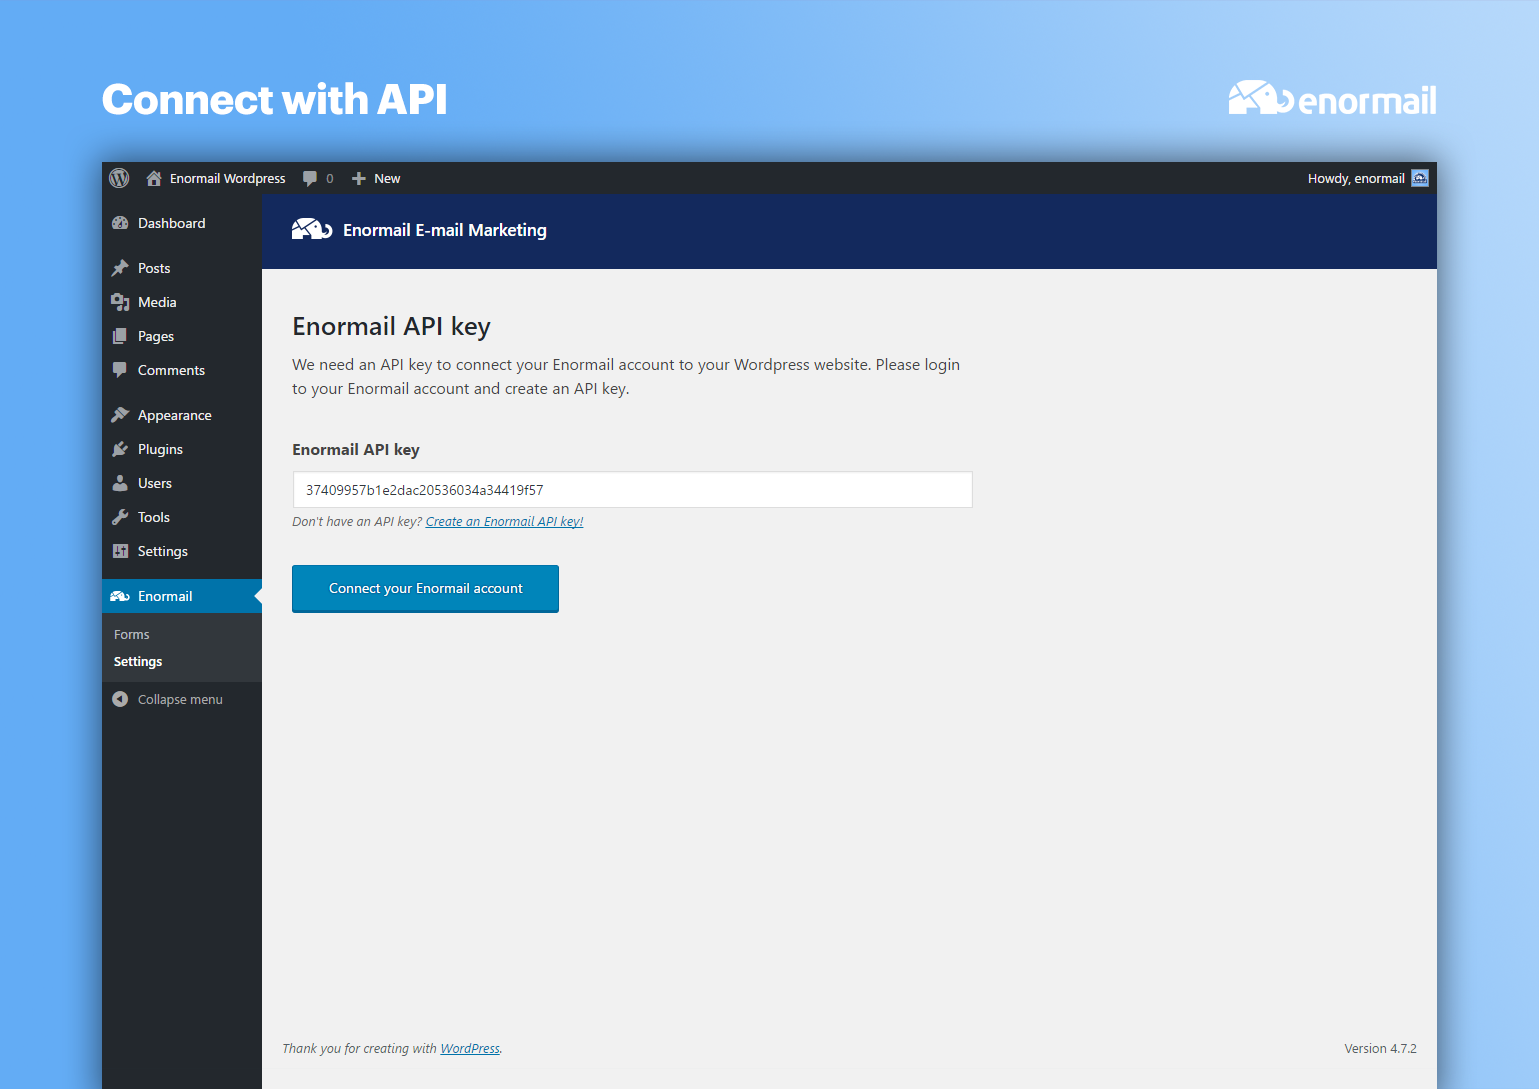 Connect your Enormail account through the Enormail API